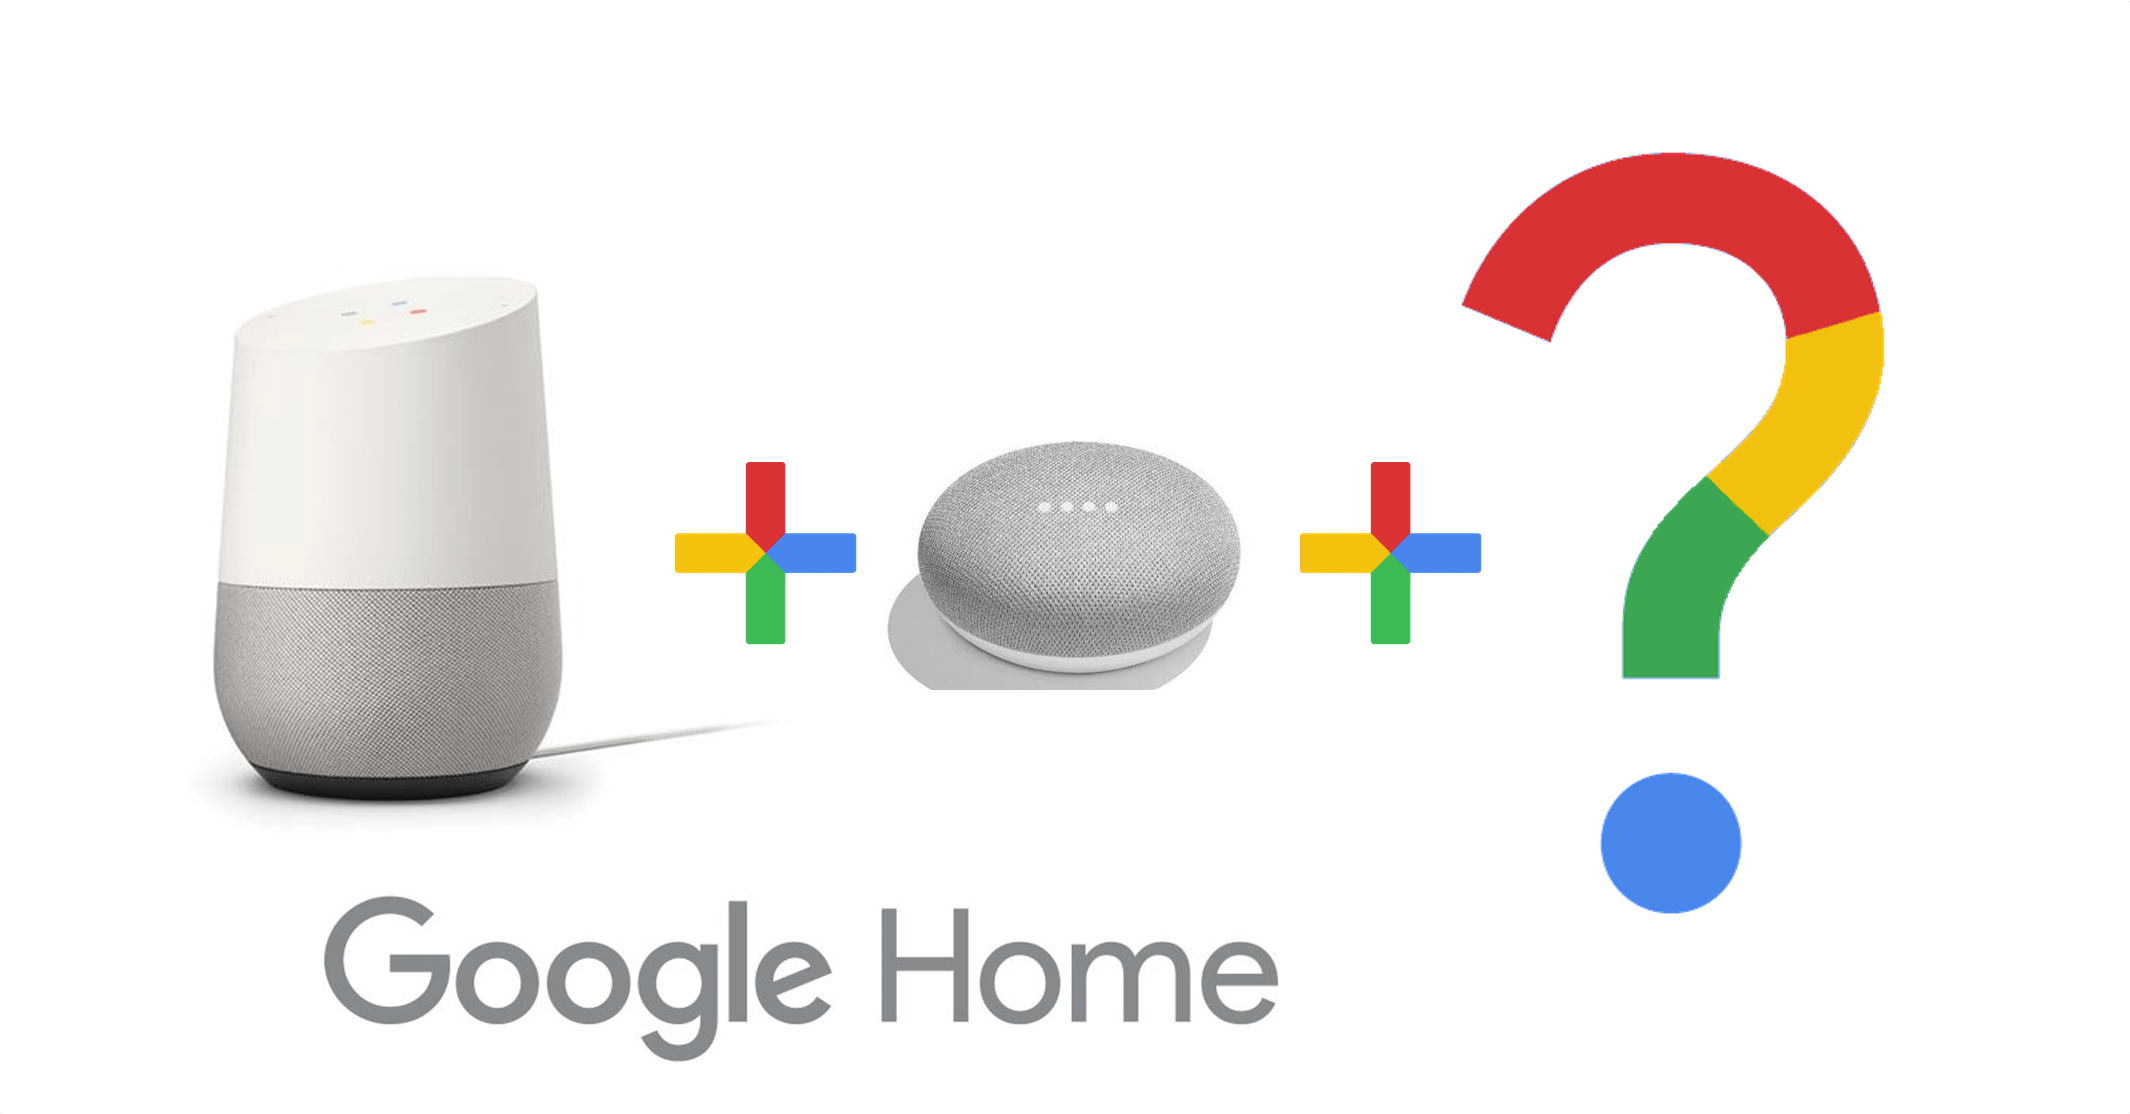 Google Home Aus Google Rumoured To Release Stereo Google Home Dubbed The